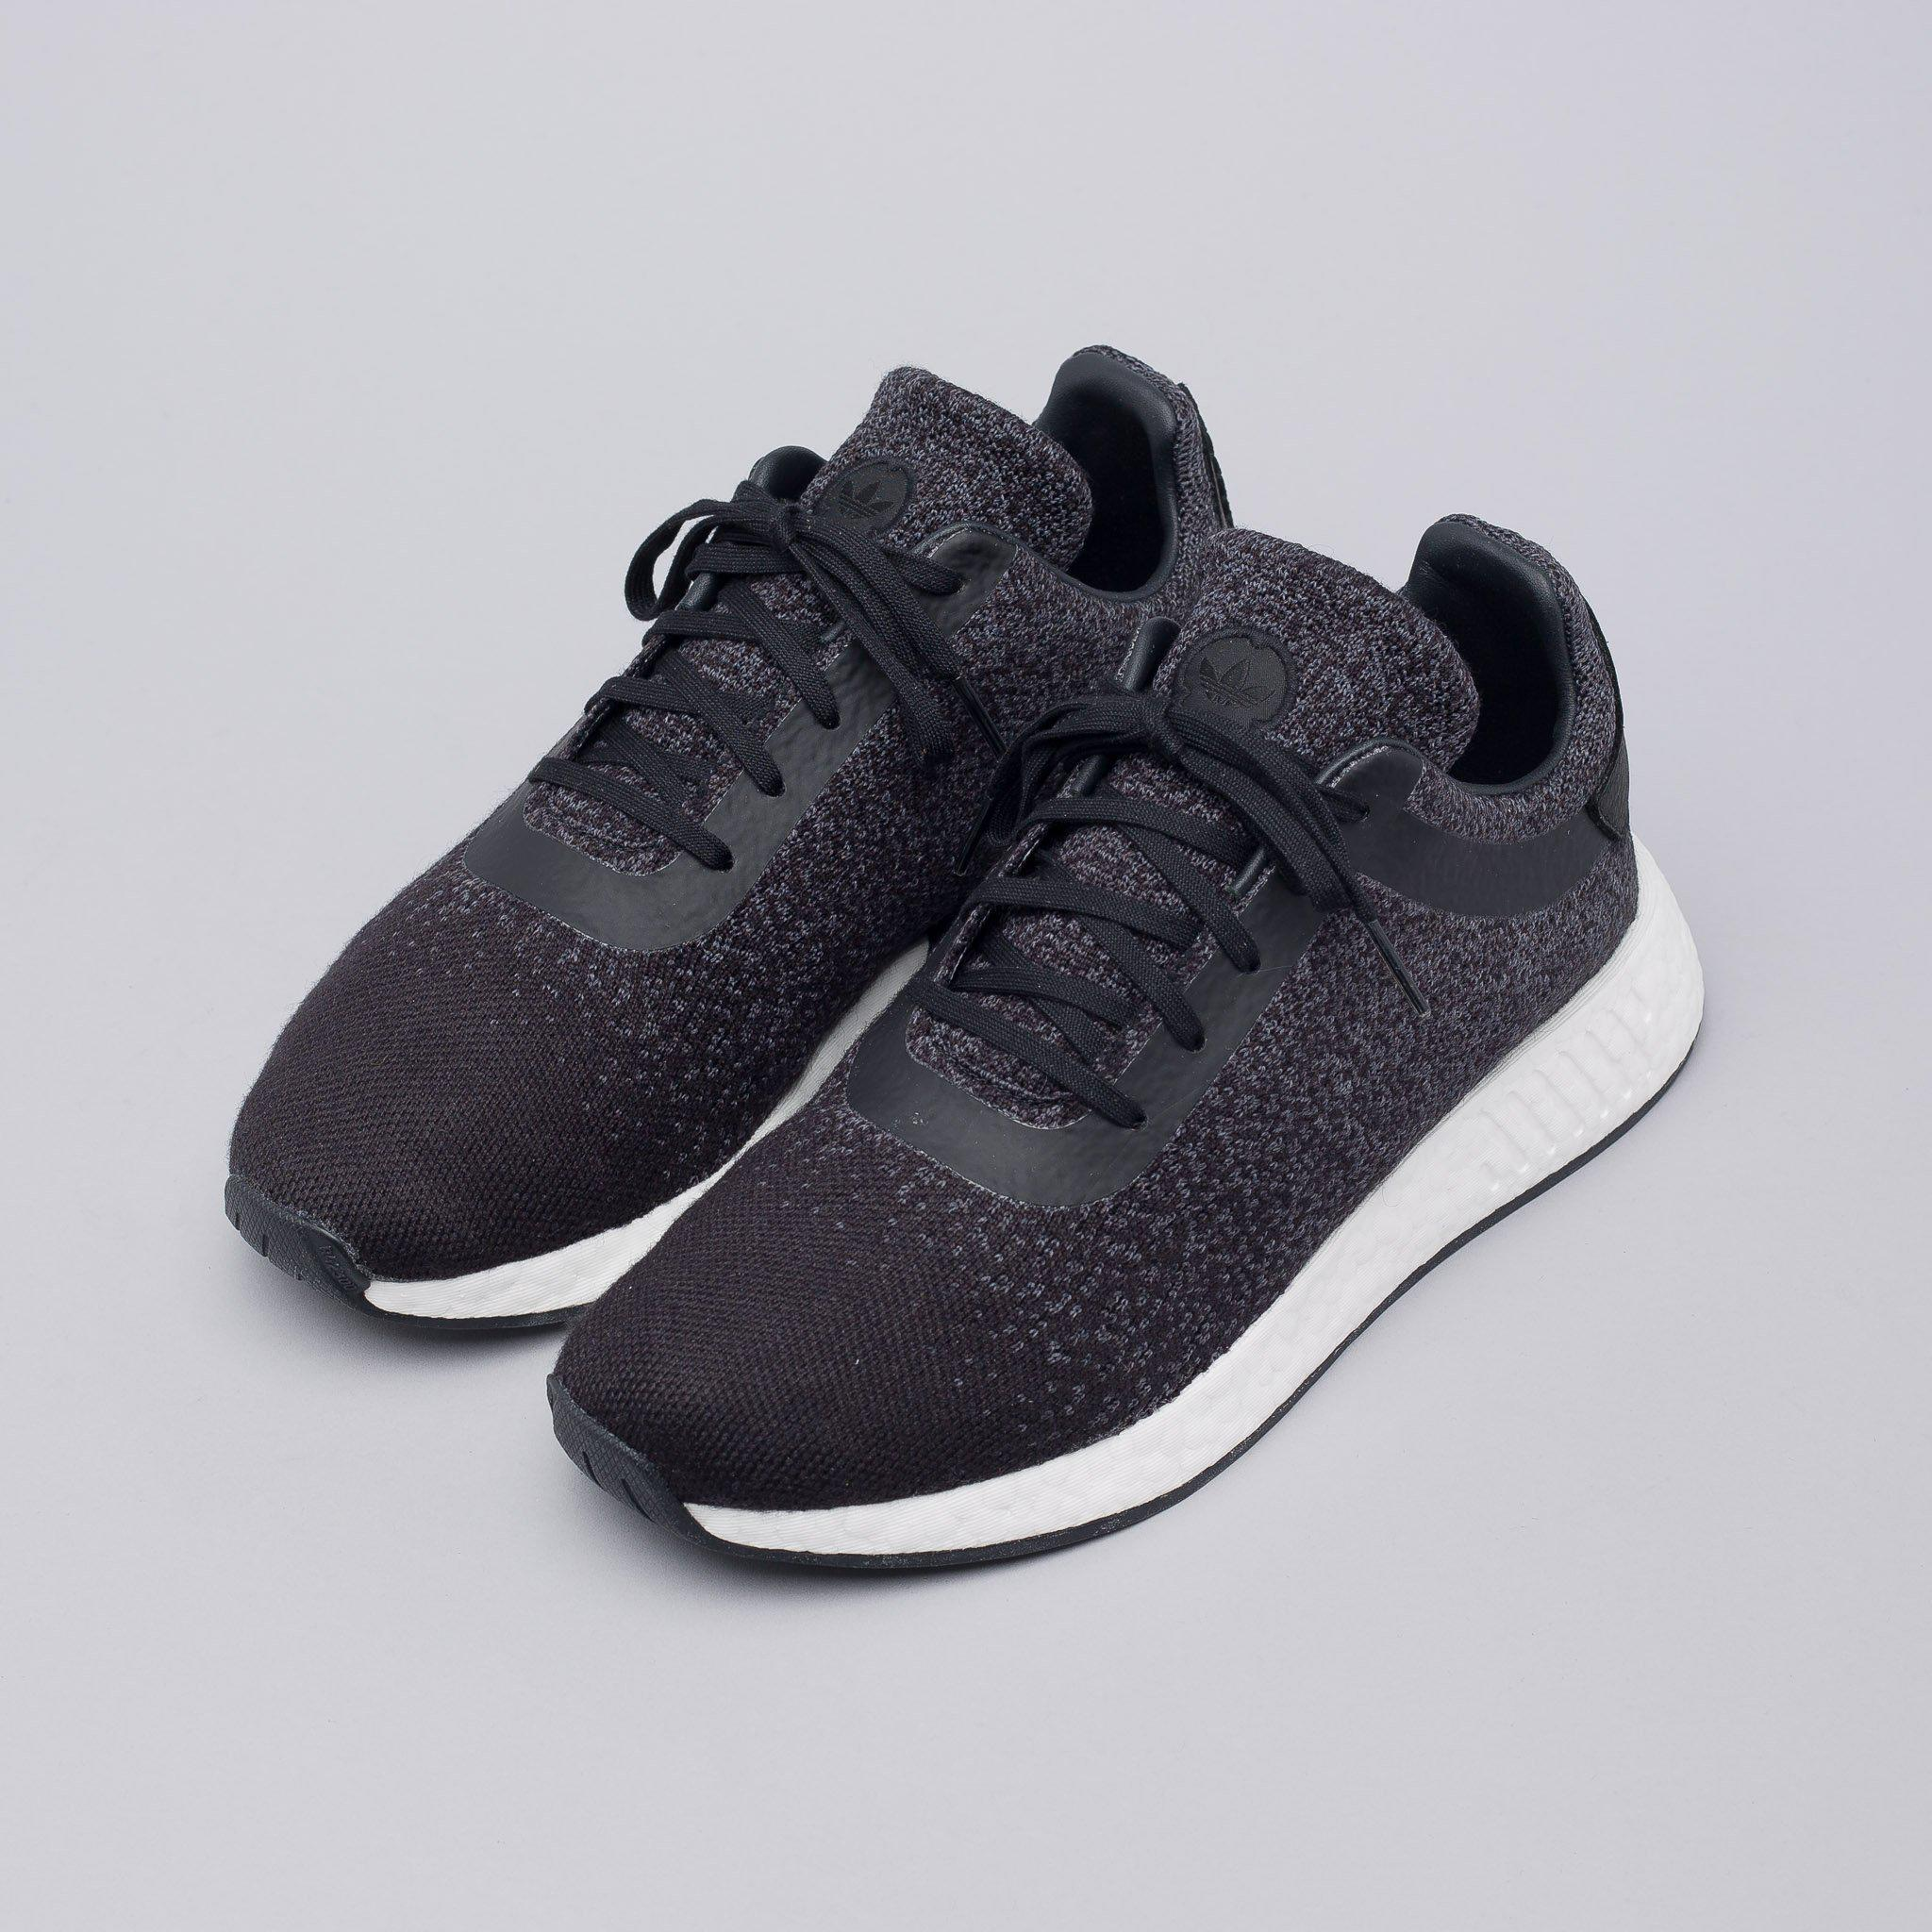 size 40 05245 0be48 Men's X Wings+horns Nmd R2 Primeknit Core Black/utility Black/grey